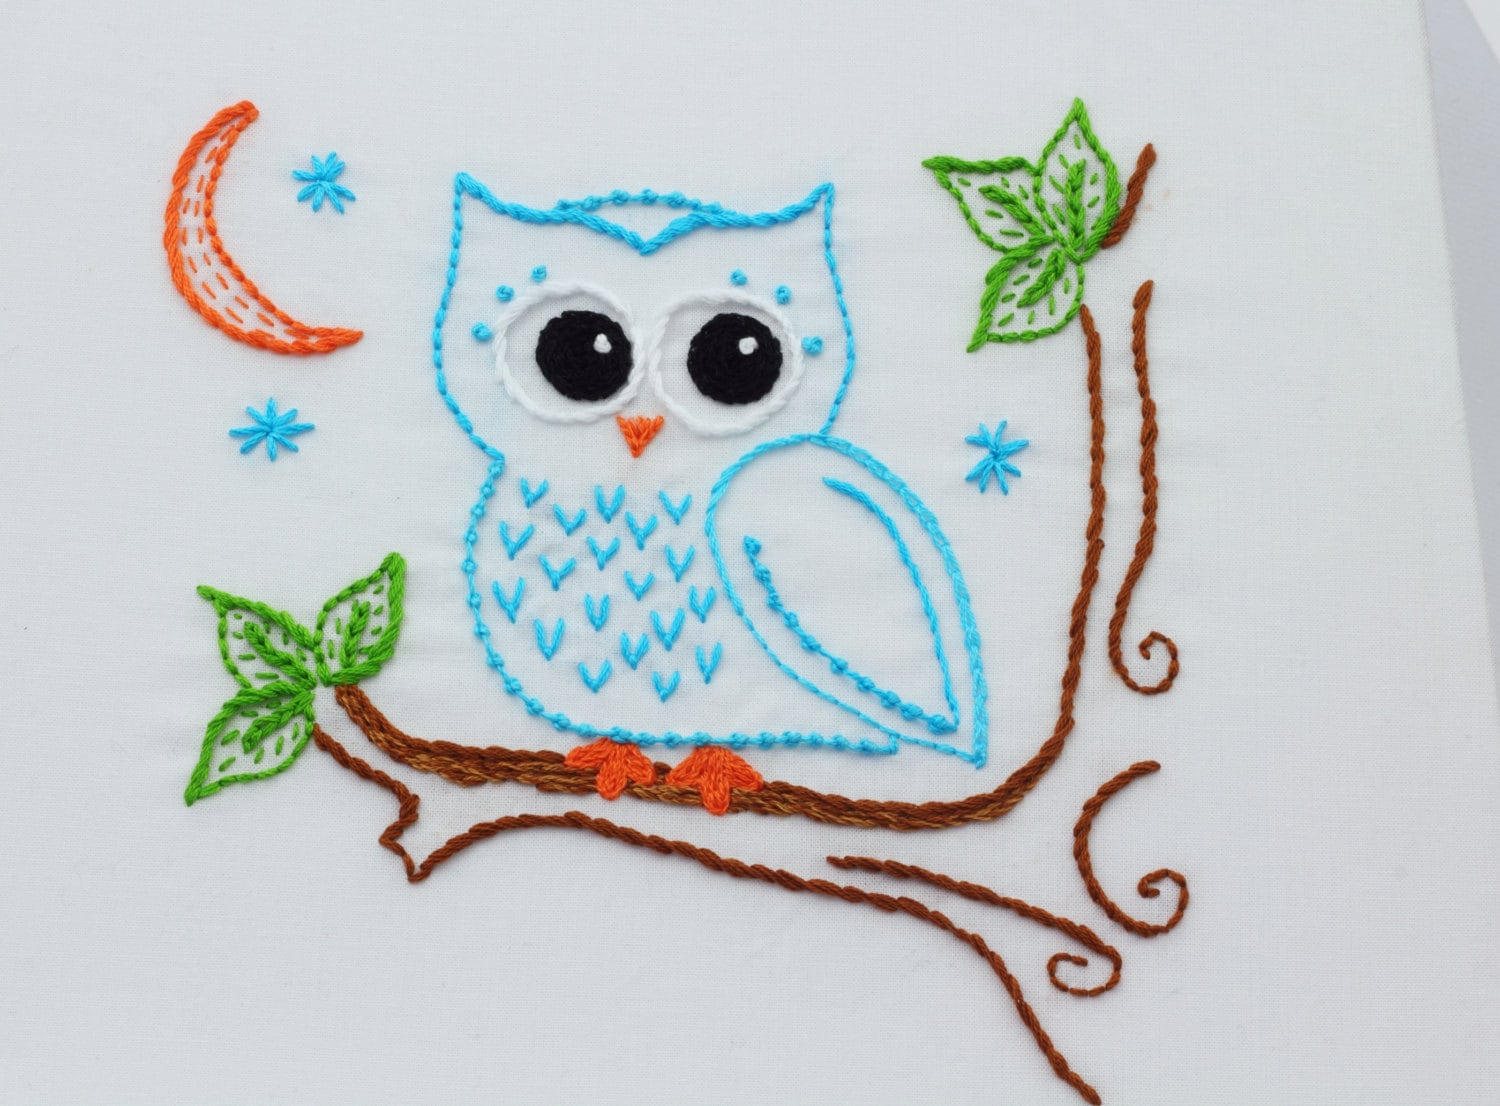 delightful Owl Embroidery Pattern Part - 1: Owl Embroidery Pattern Hand Embroidery Pattern Owls Owl Design | Etsy